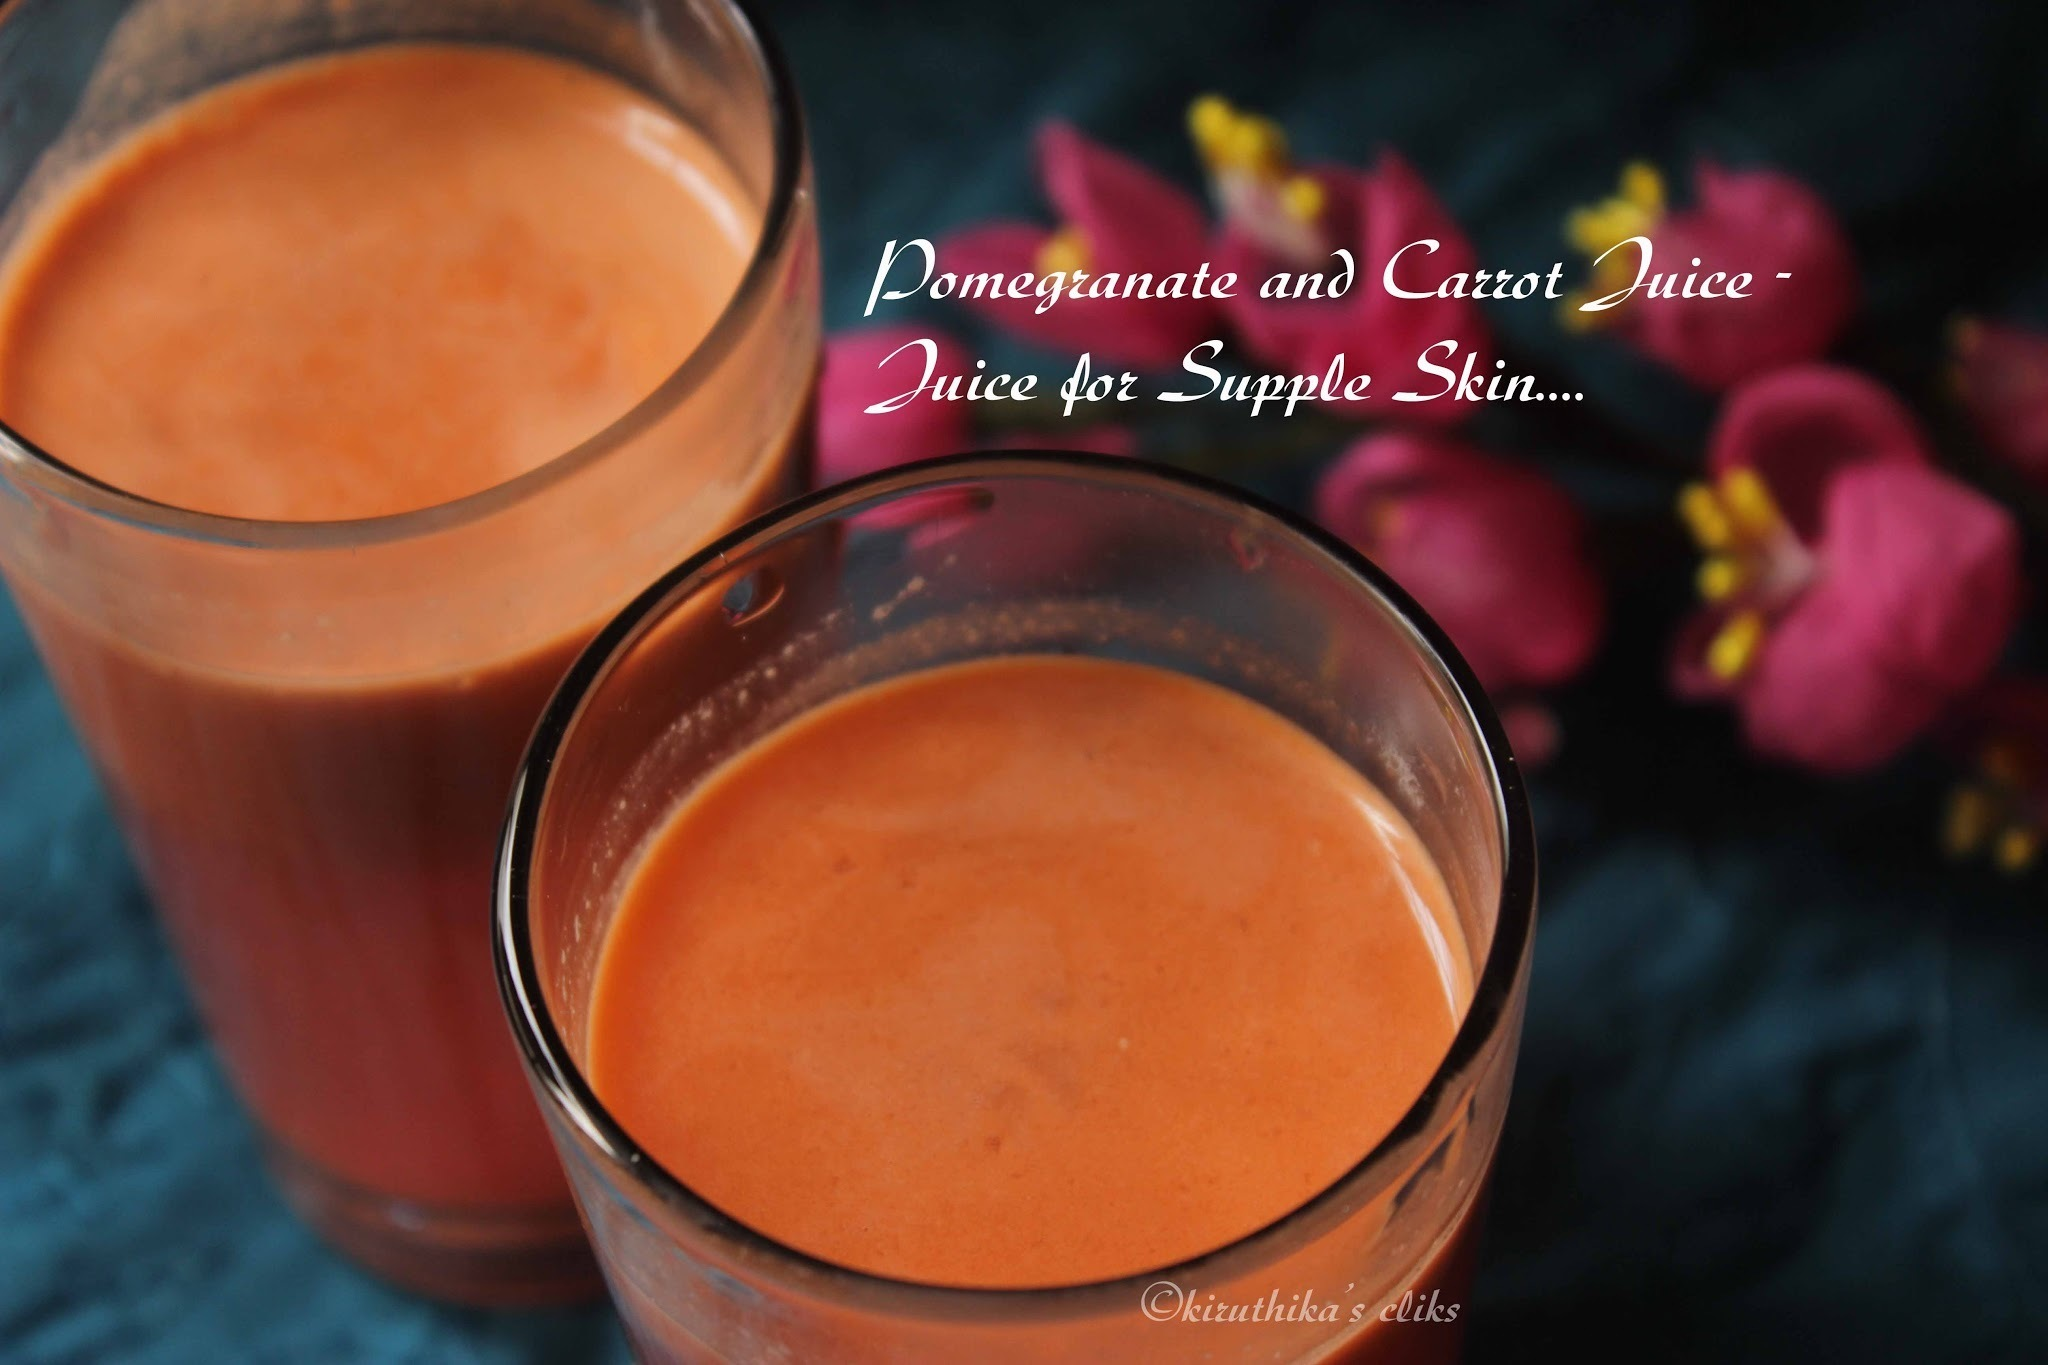 Pomegranate and Carrot Juice- Juice for Supple Skin